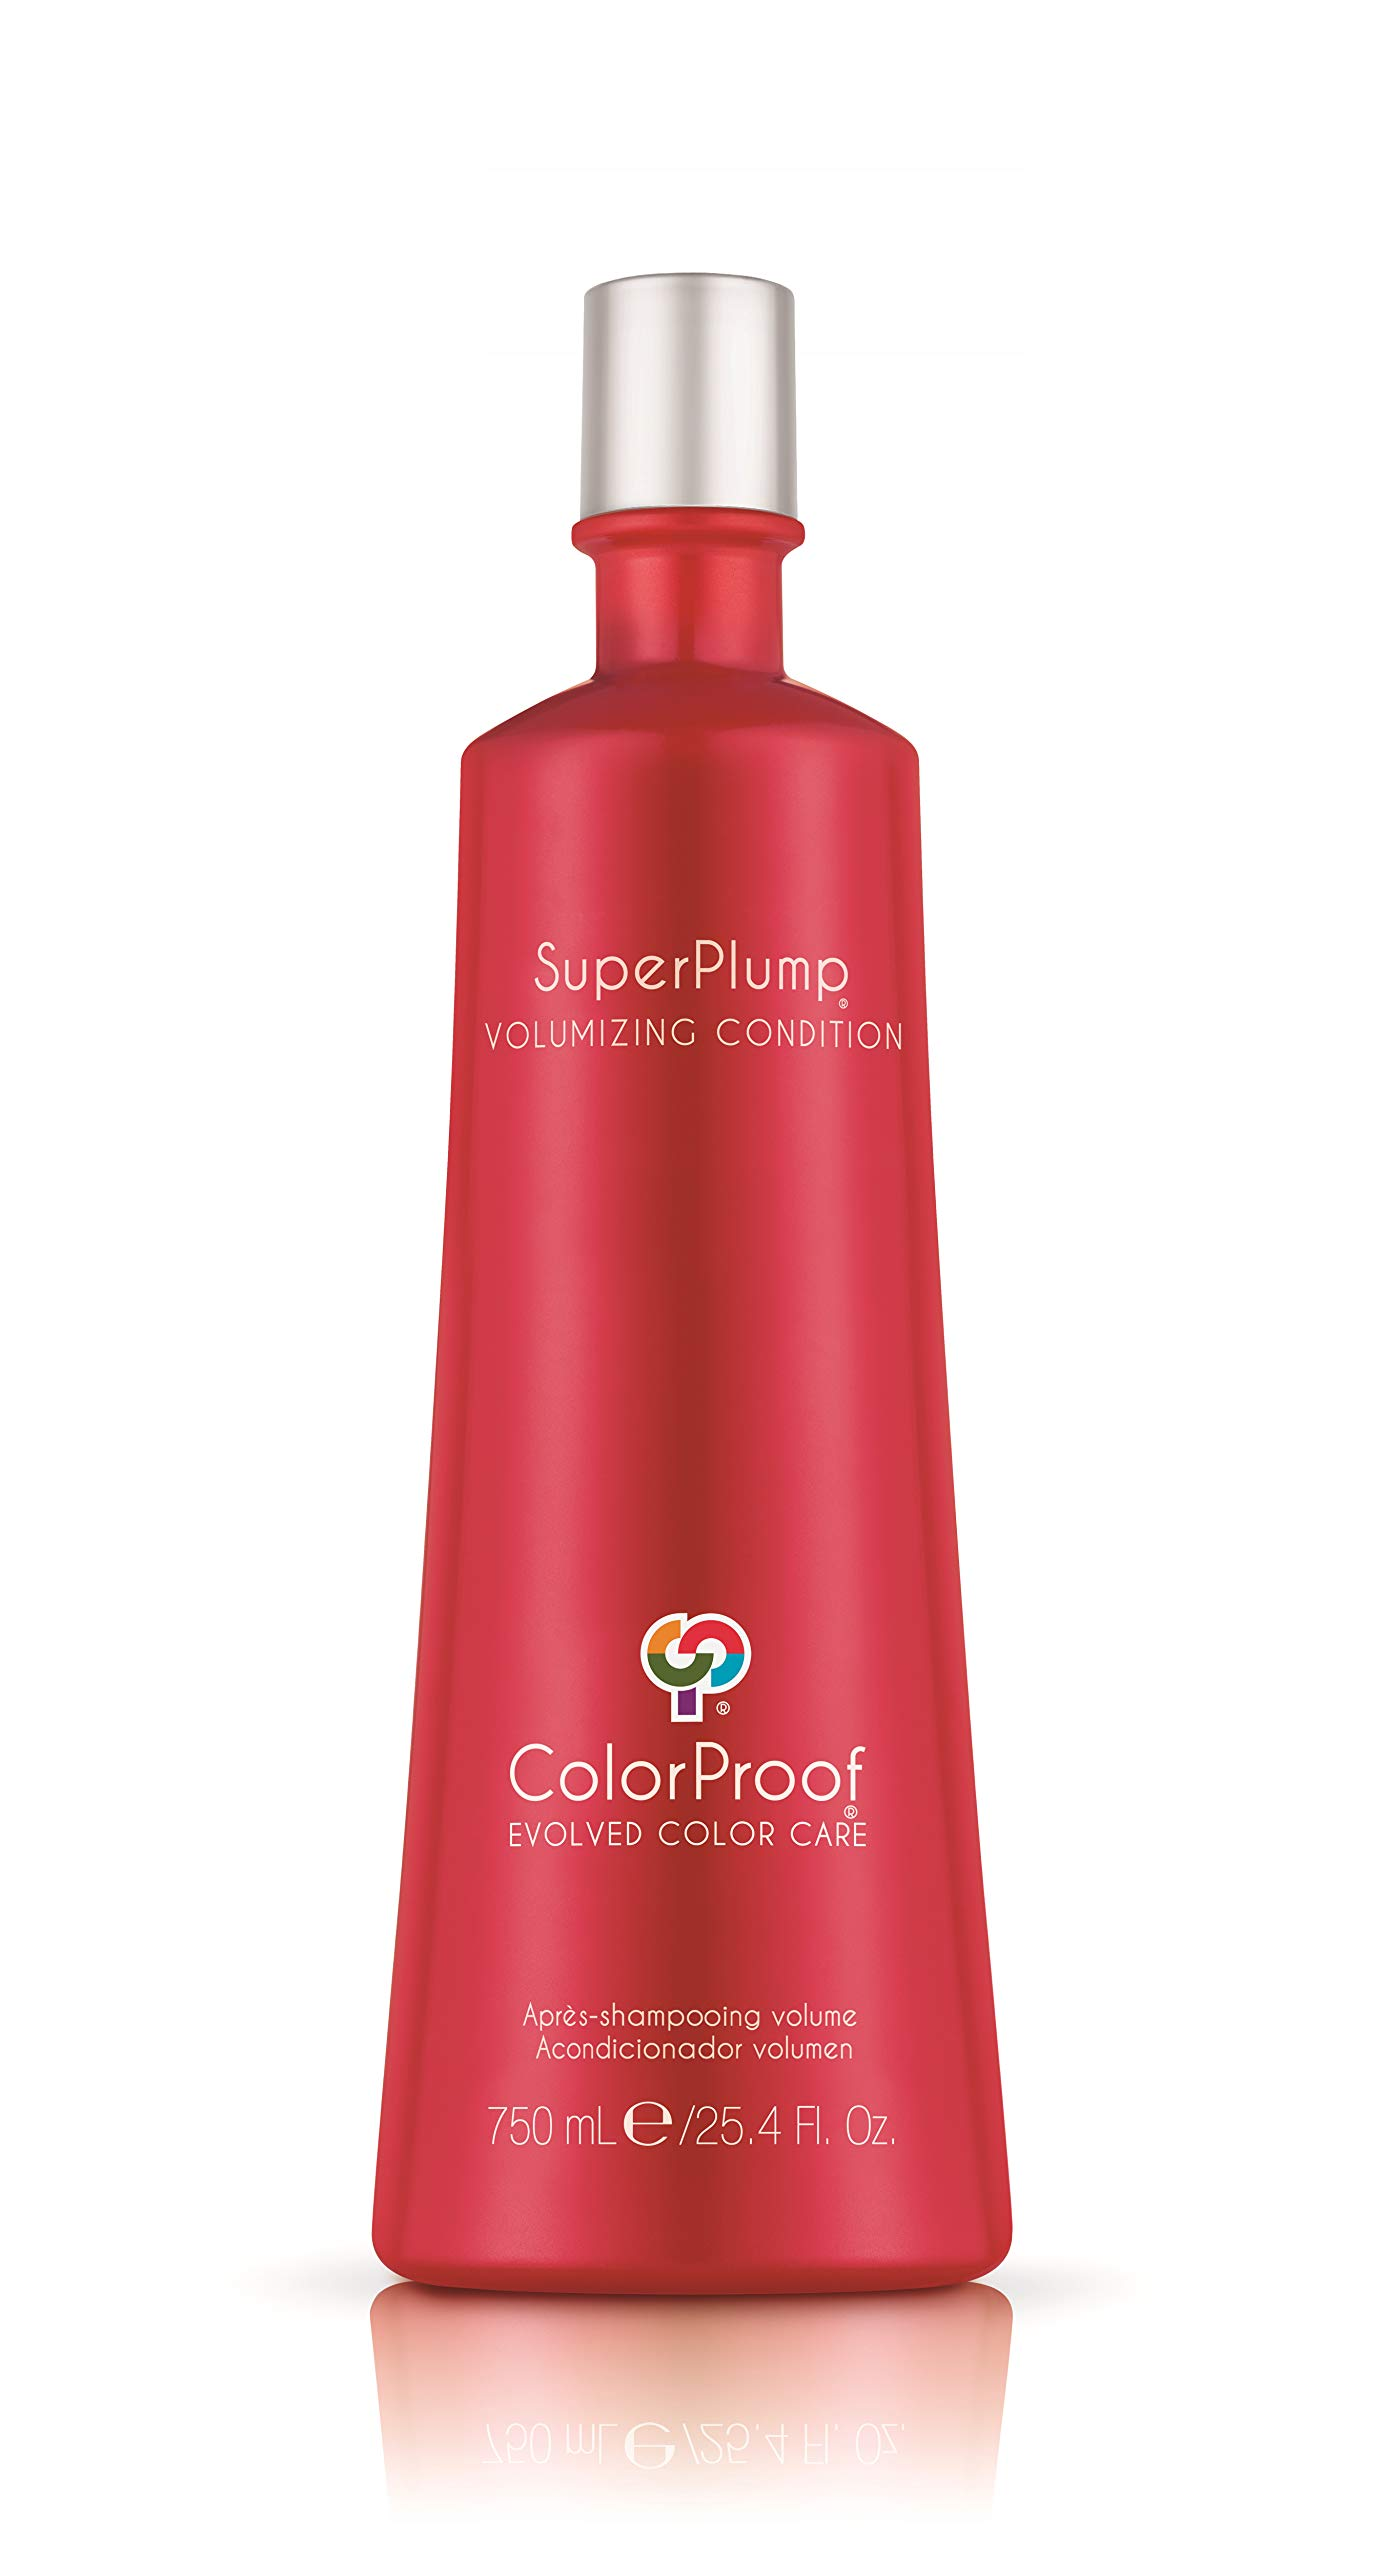 ColorProof SuperPlump Volumizing Conditioner for Color-Treated Hair, 25.4 oz